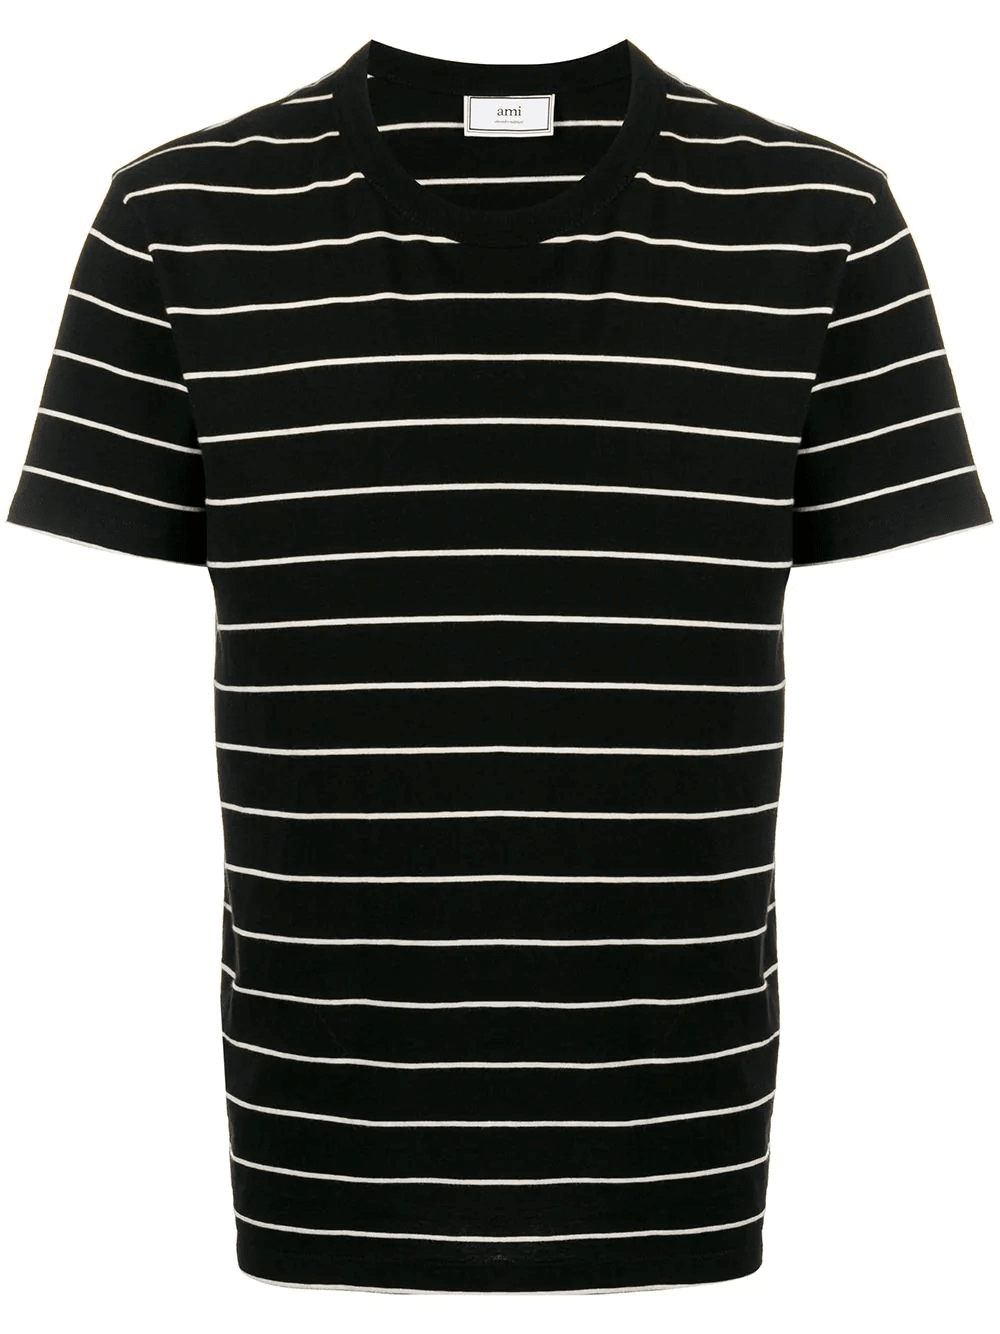 SHORT SLEEVED STRIPED TEE SHIRT